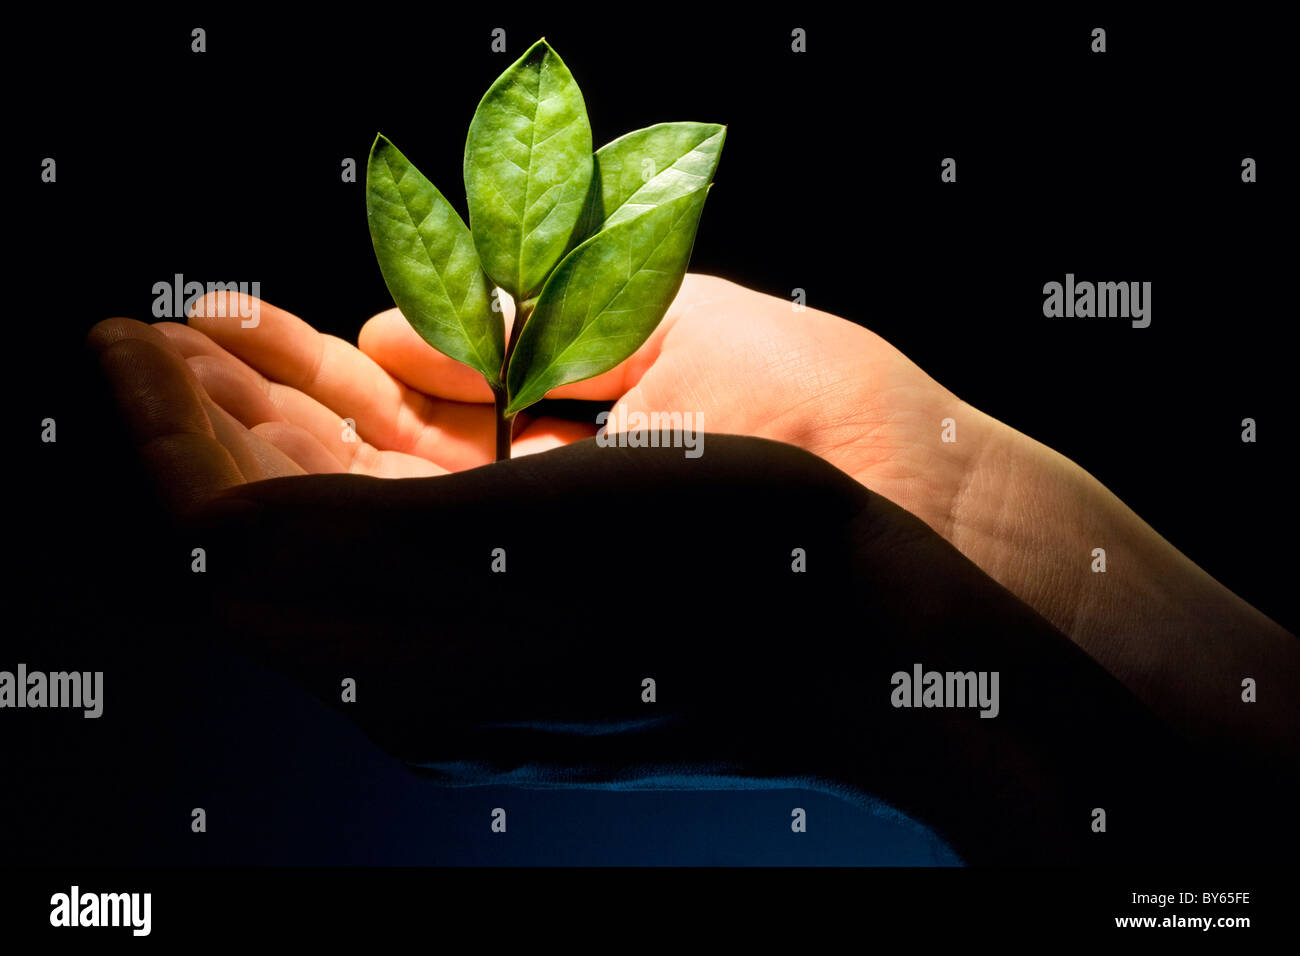 Image of a new green plant in the male hands - Stock Image